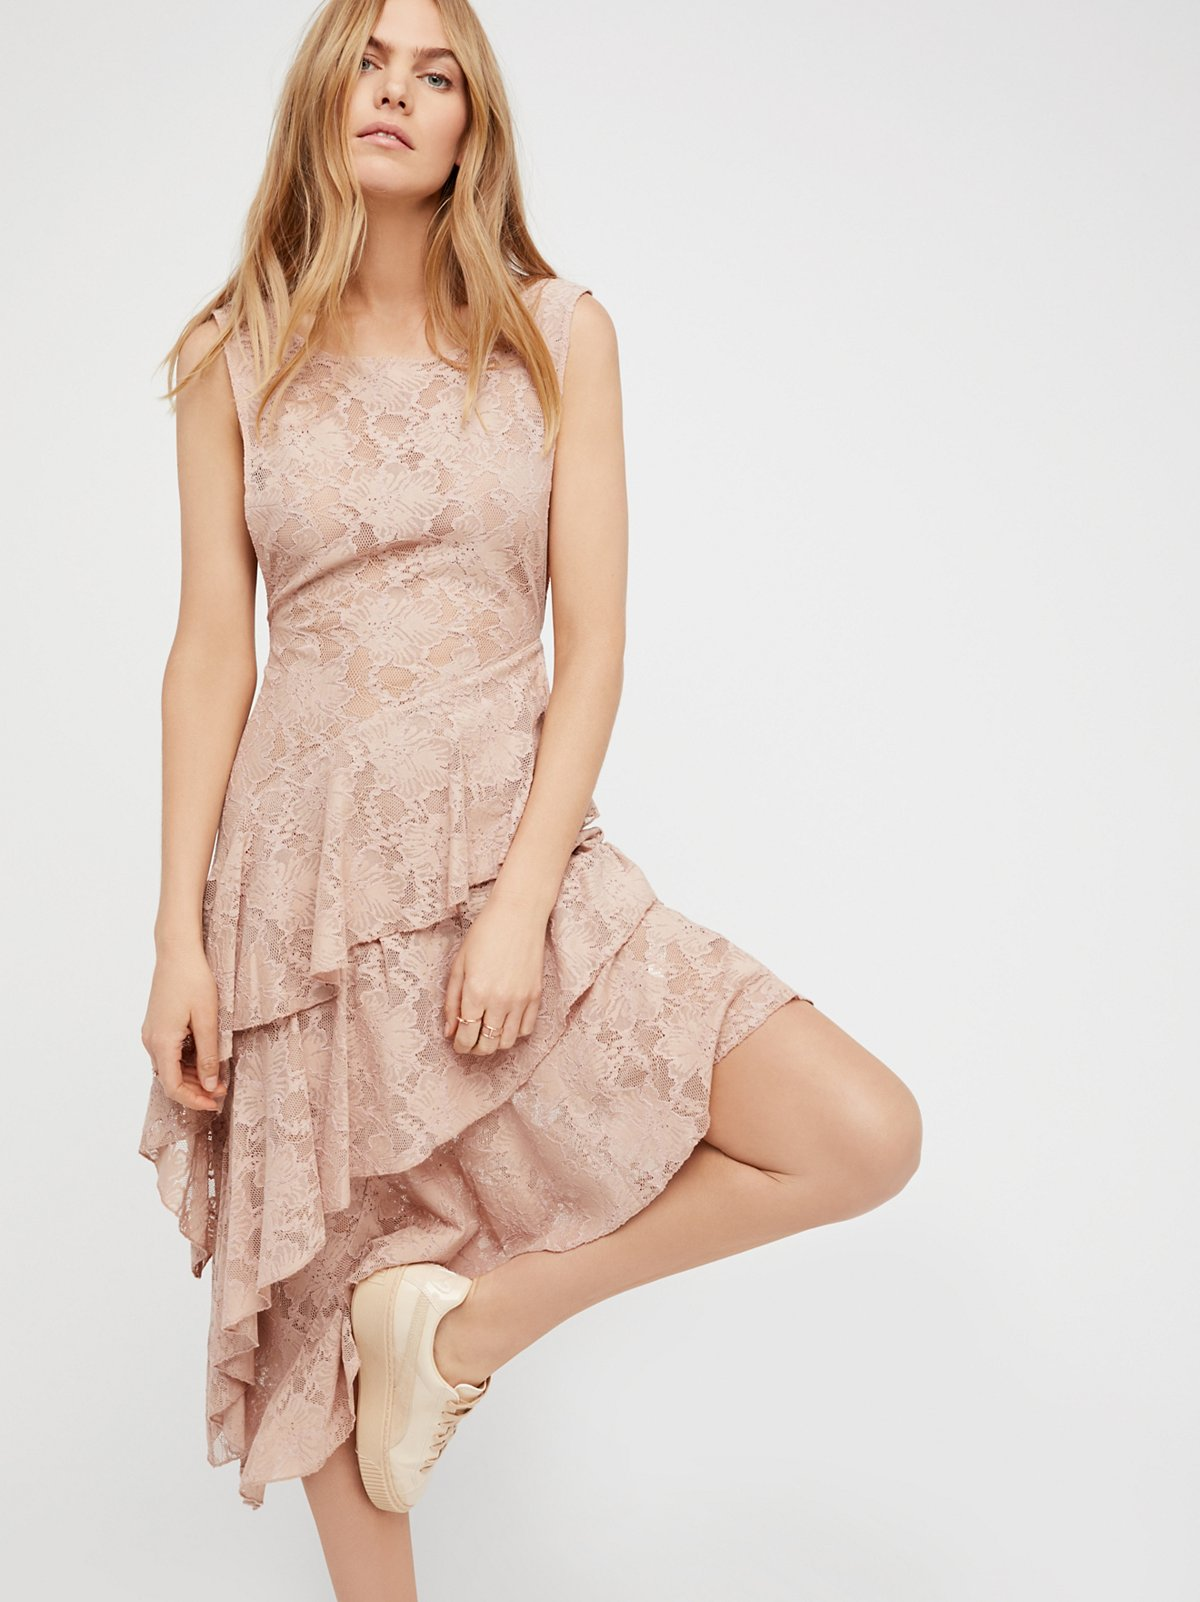 Florence Lace Slip